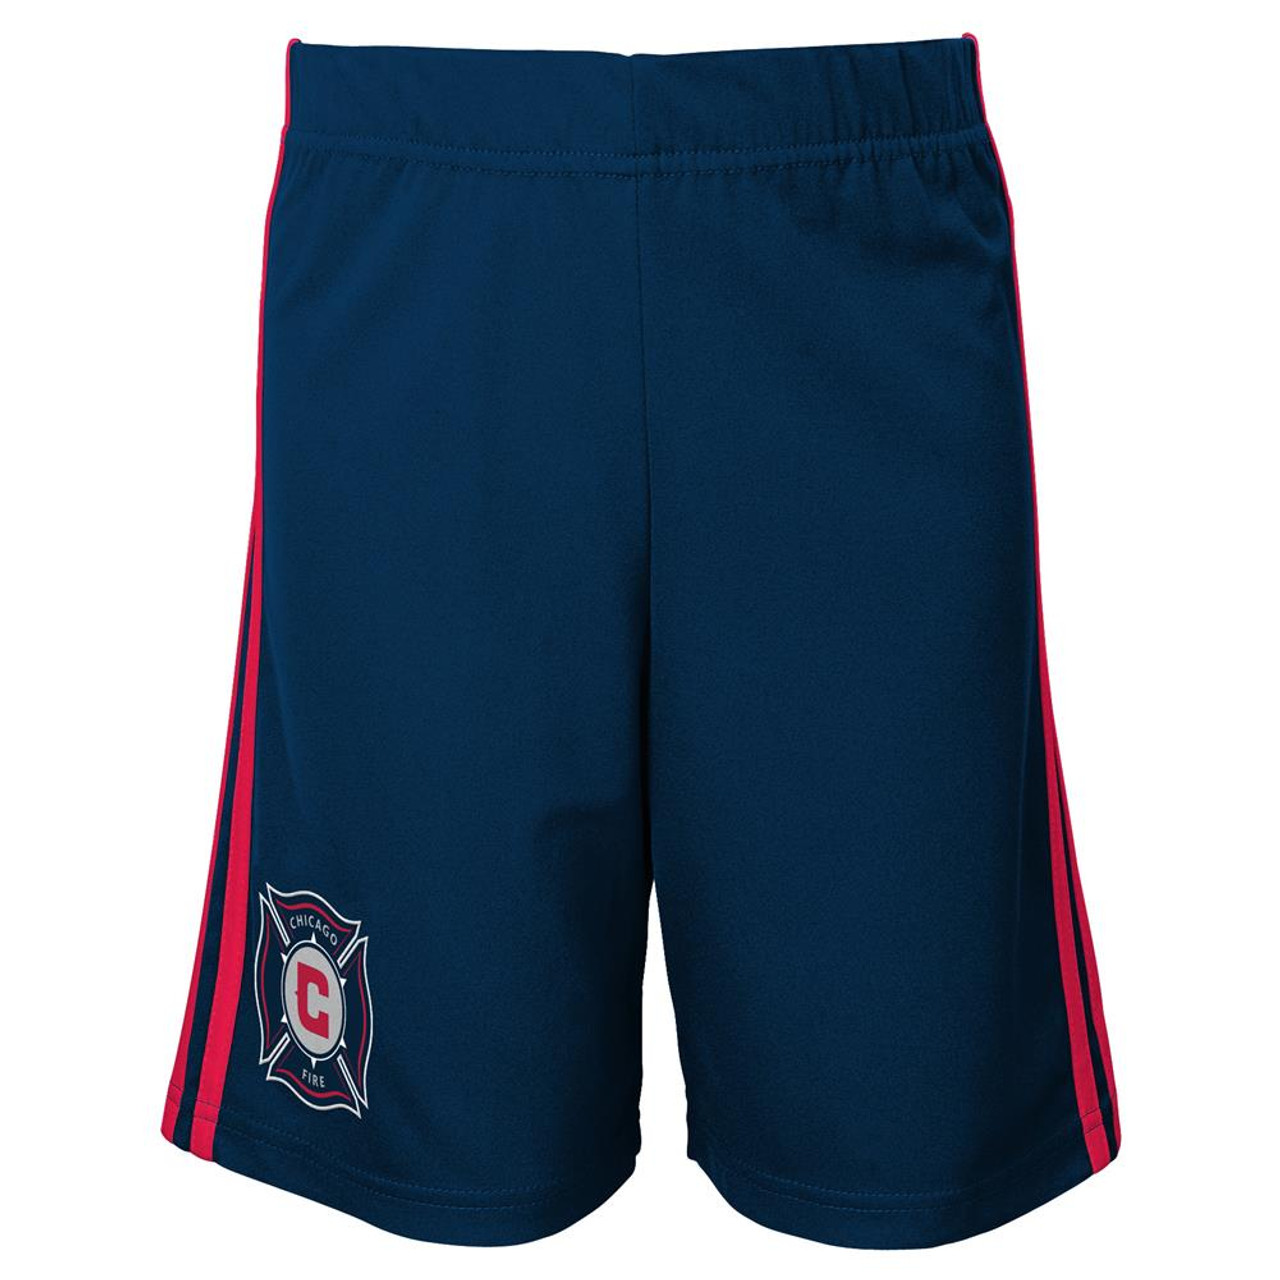 Youth Chicago Fire Shorts Adidas Primary Gym Shorts